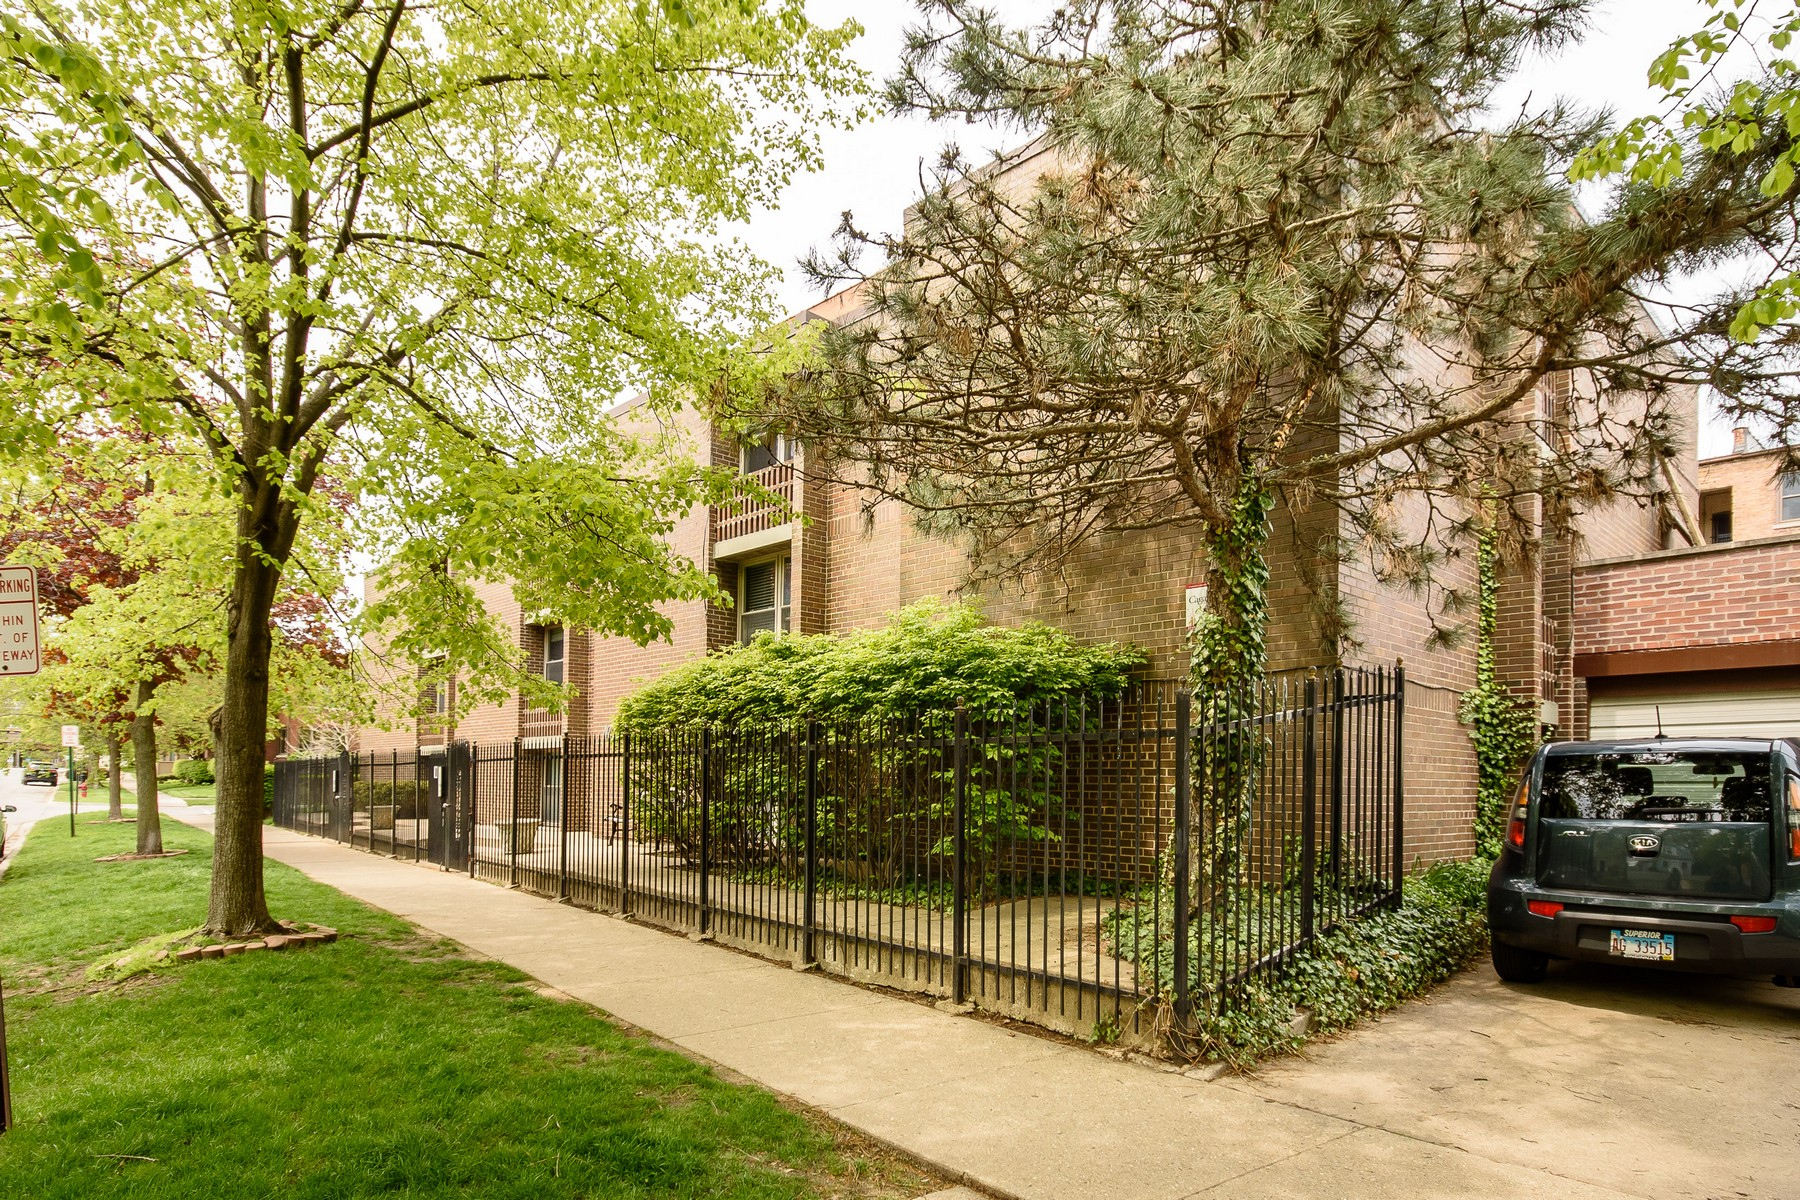 Condominium for Sale at Gorgeous 2 Bedroom Condo 423 South Boulevard Unit 2E Evanston, Illinois 60202 United States